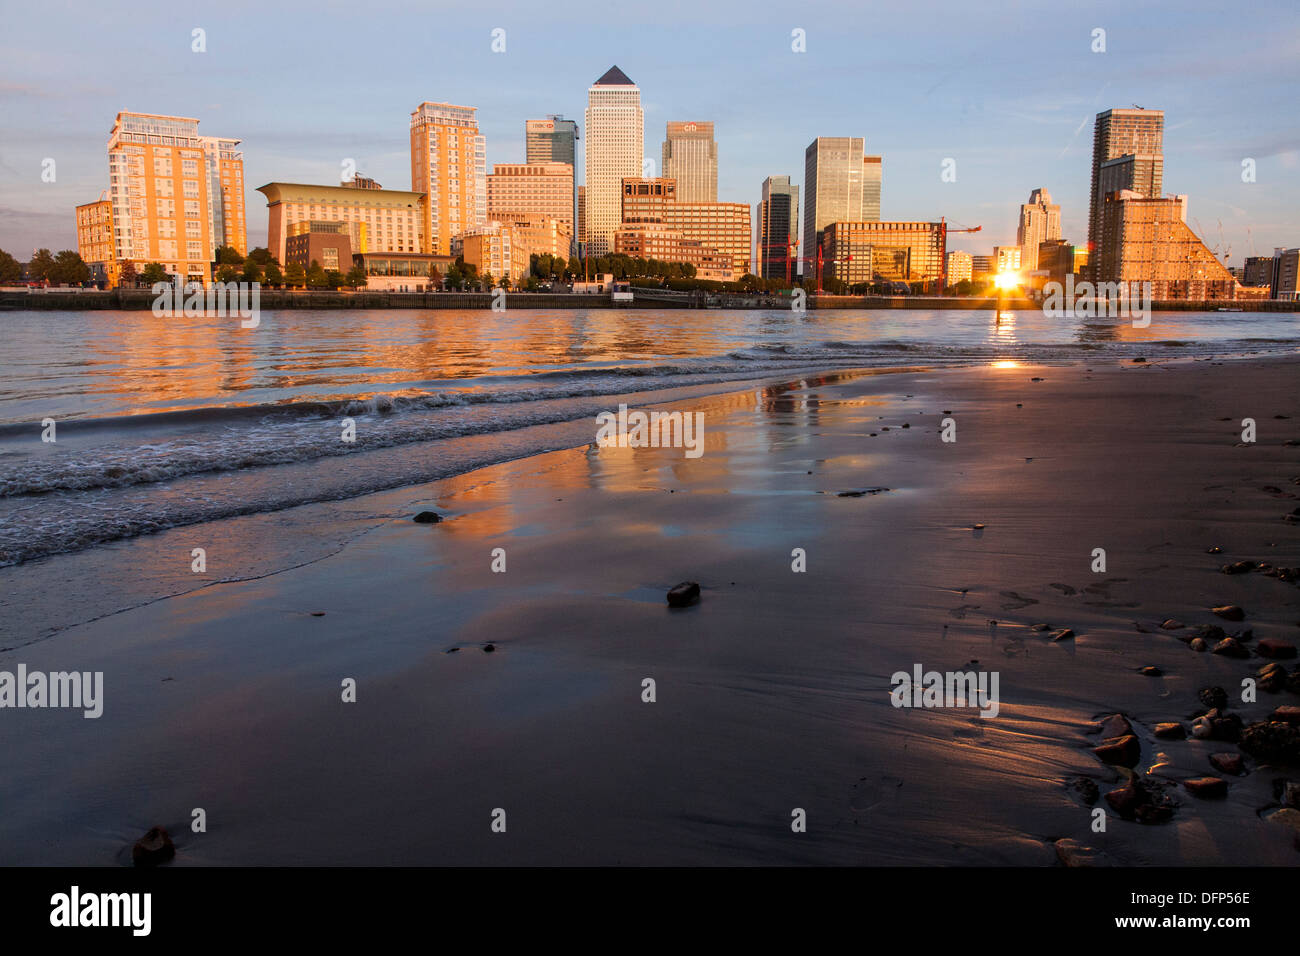 canary wharf docklands sunset cityscape - Stock Image